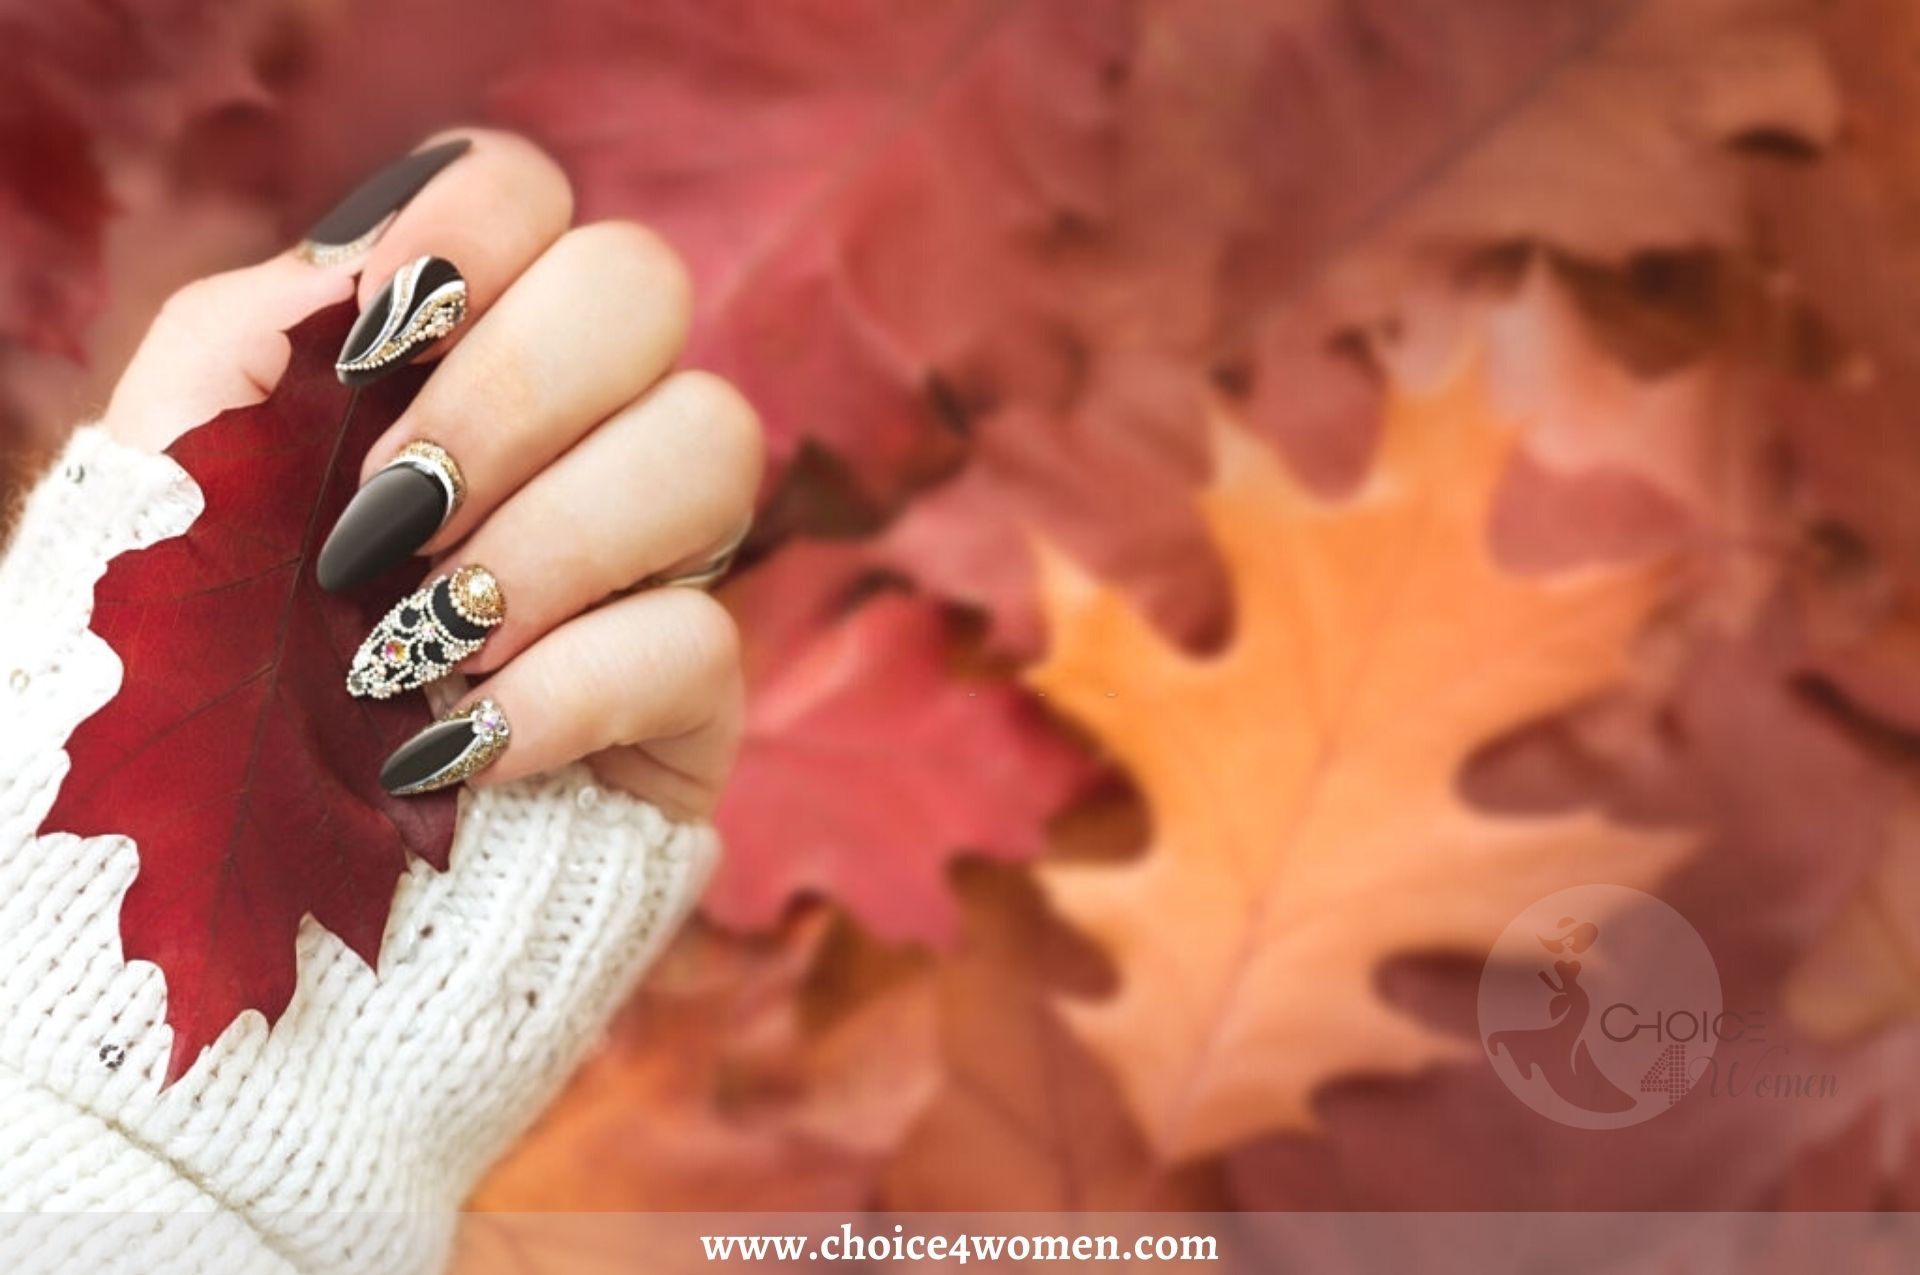 Top Most Beautiful & Stunning Diamond Nails Art Designs